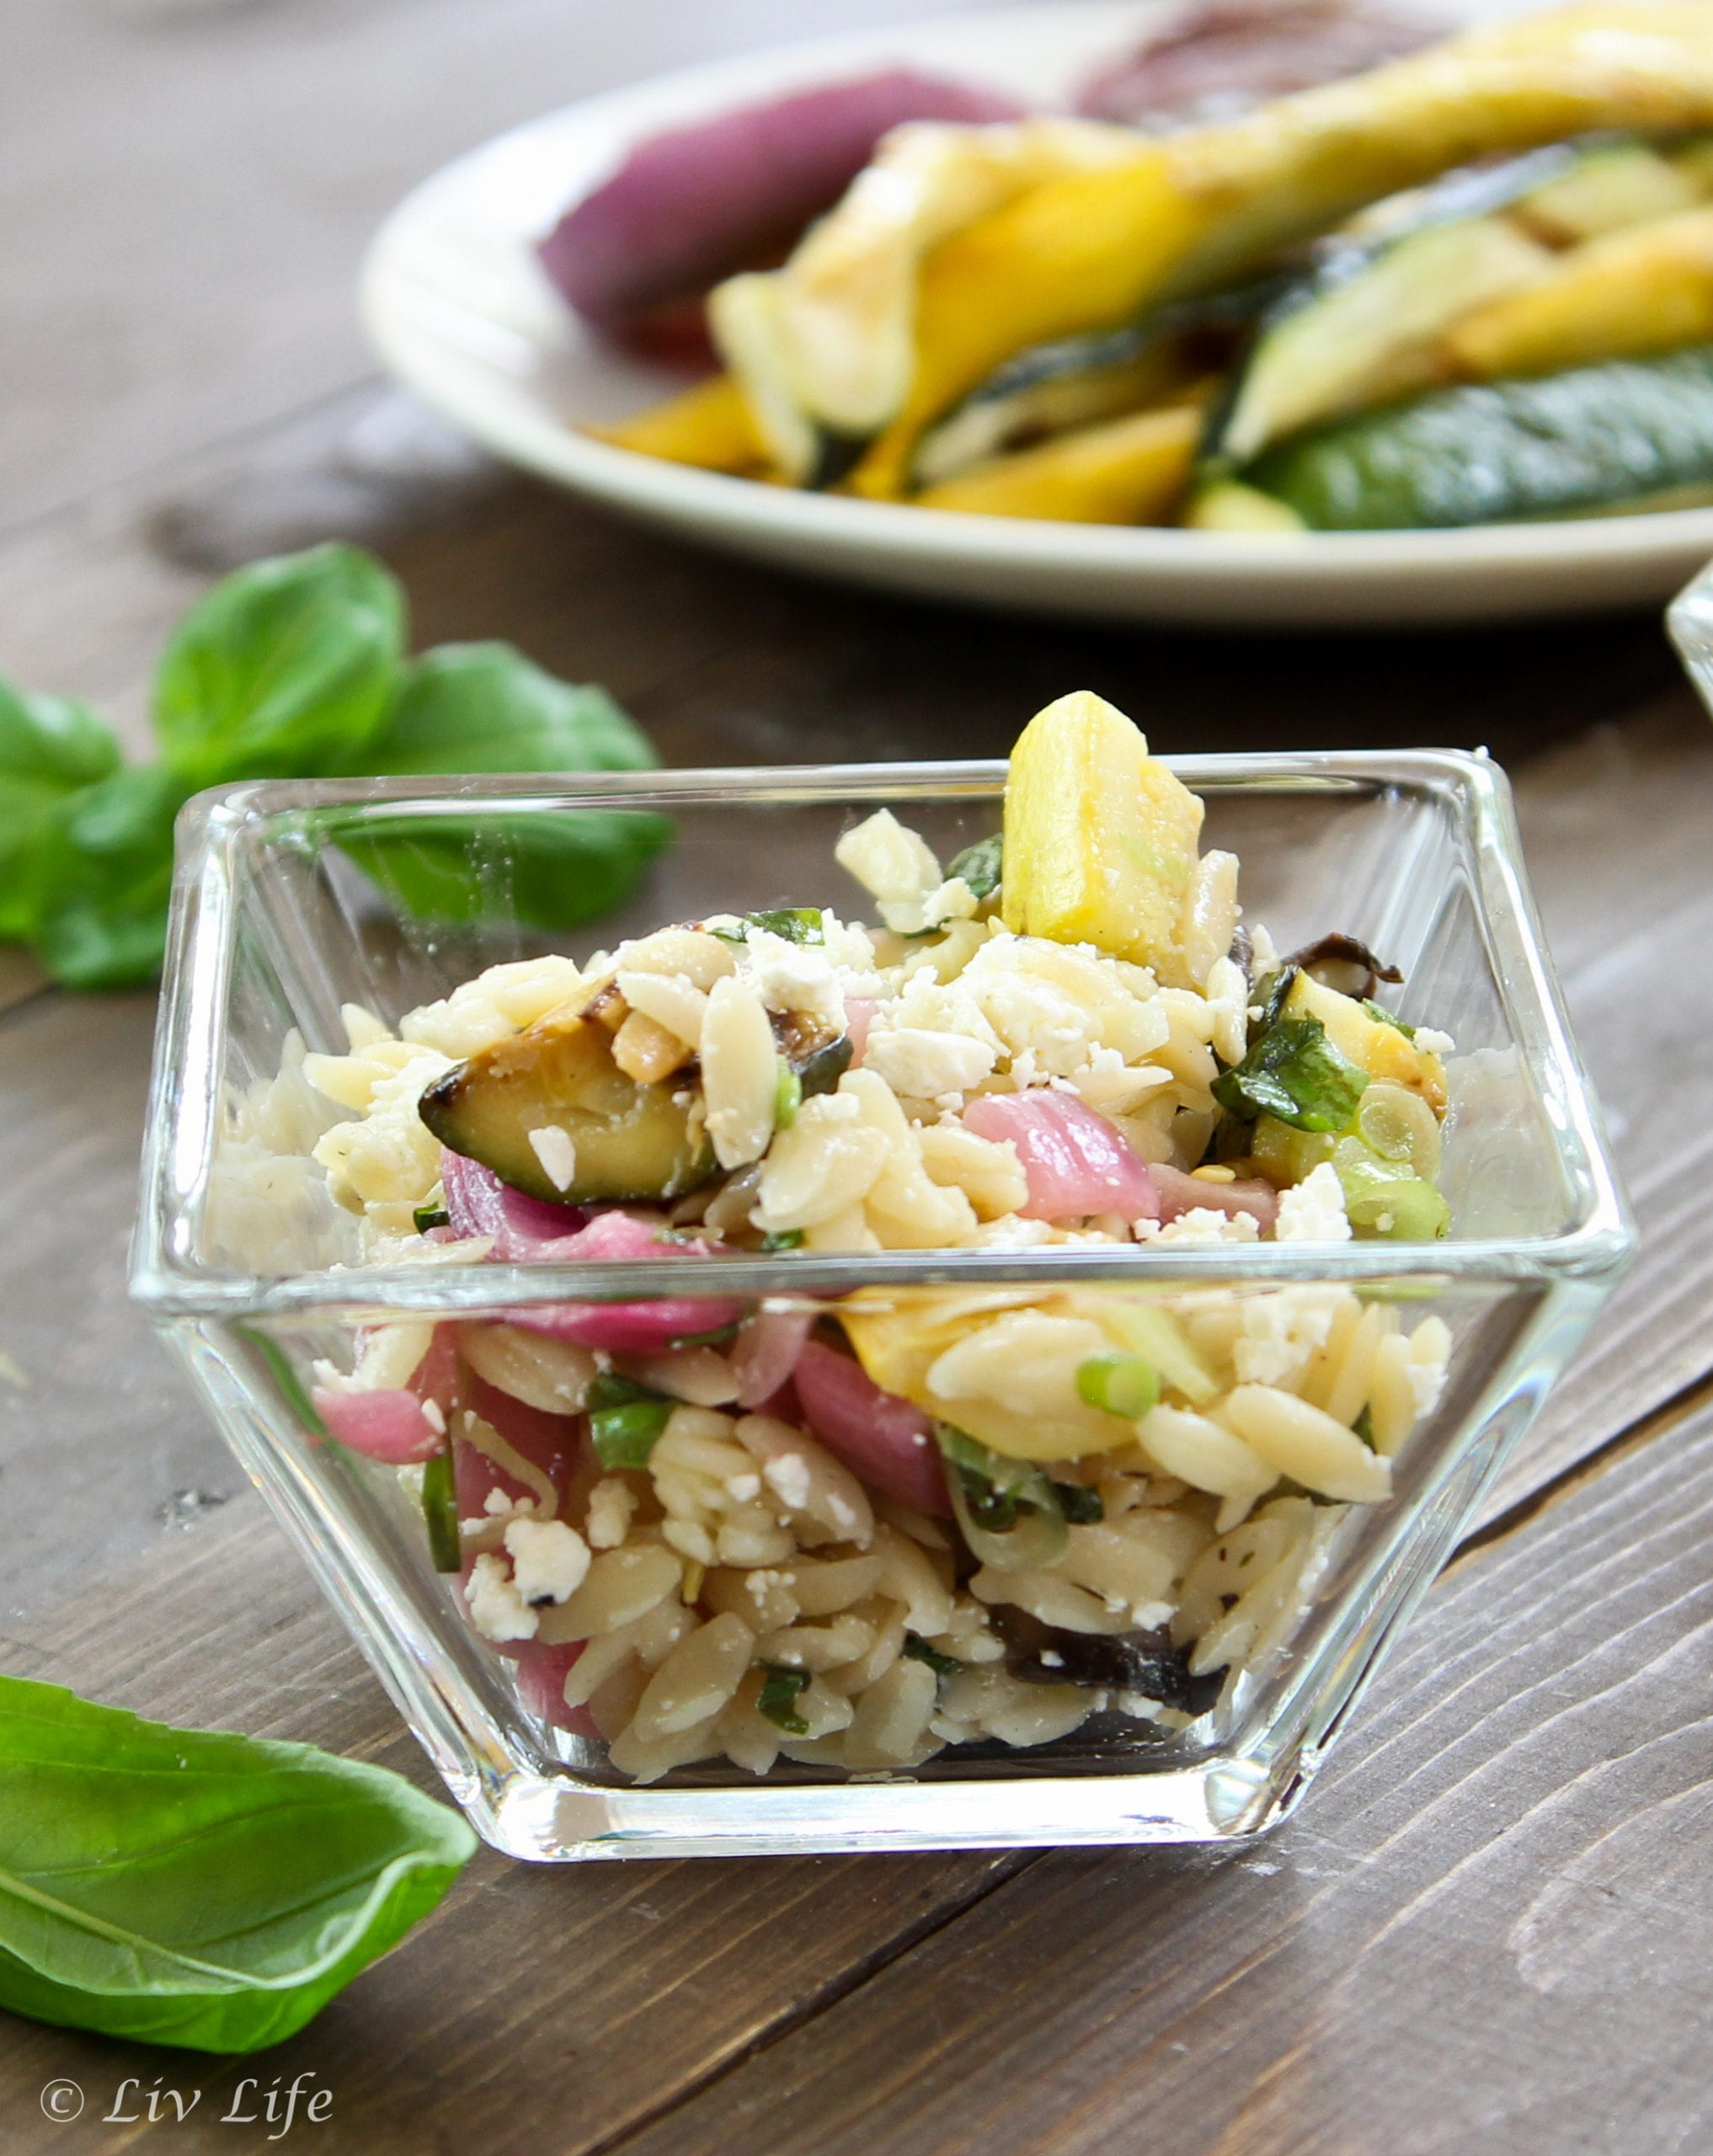 Lemony Orzo Salad with Grilled Zucchii (1 of 2)